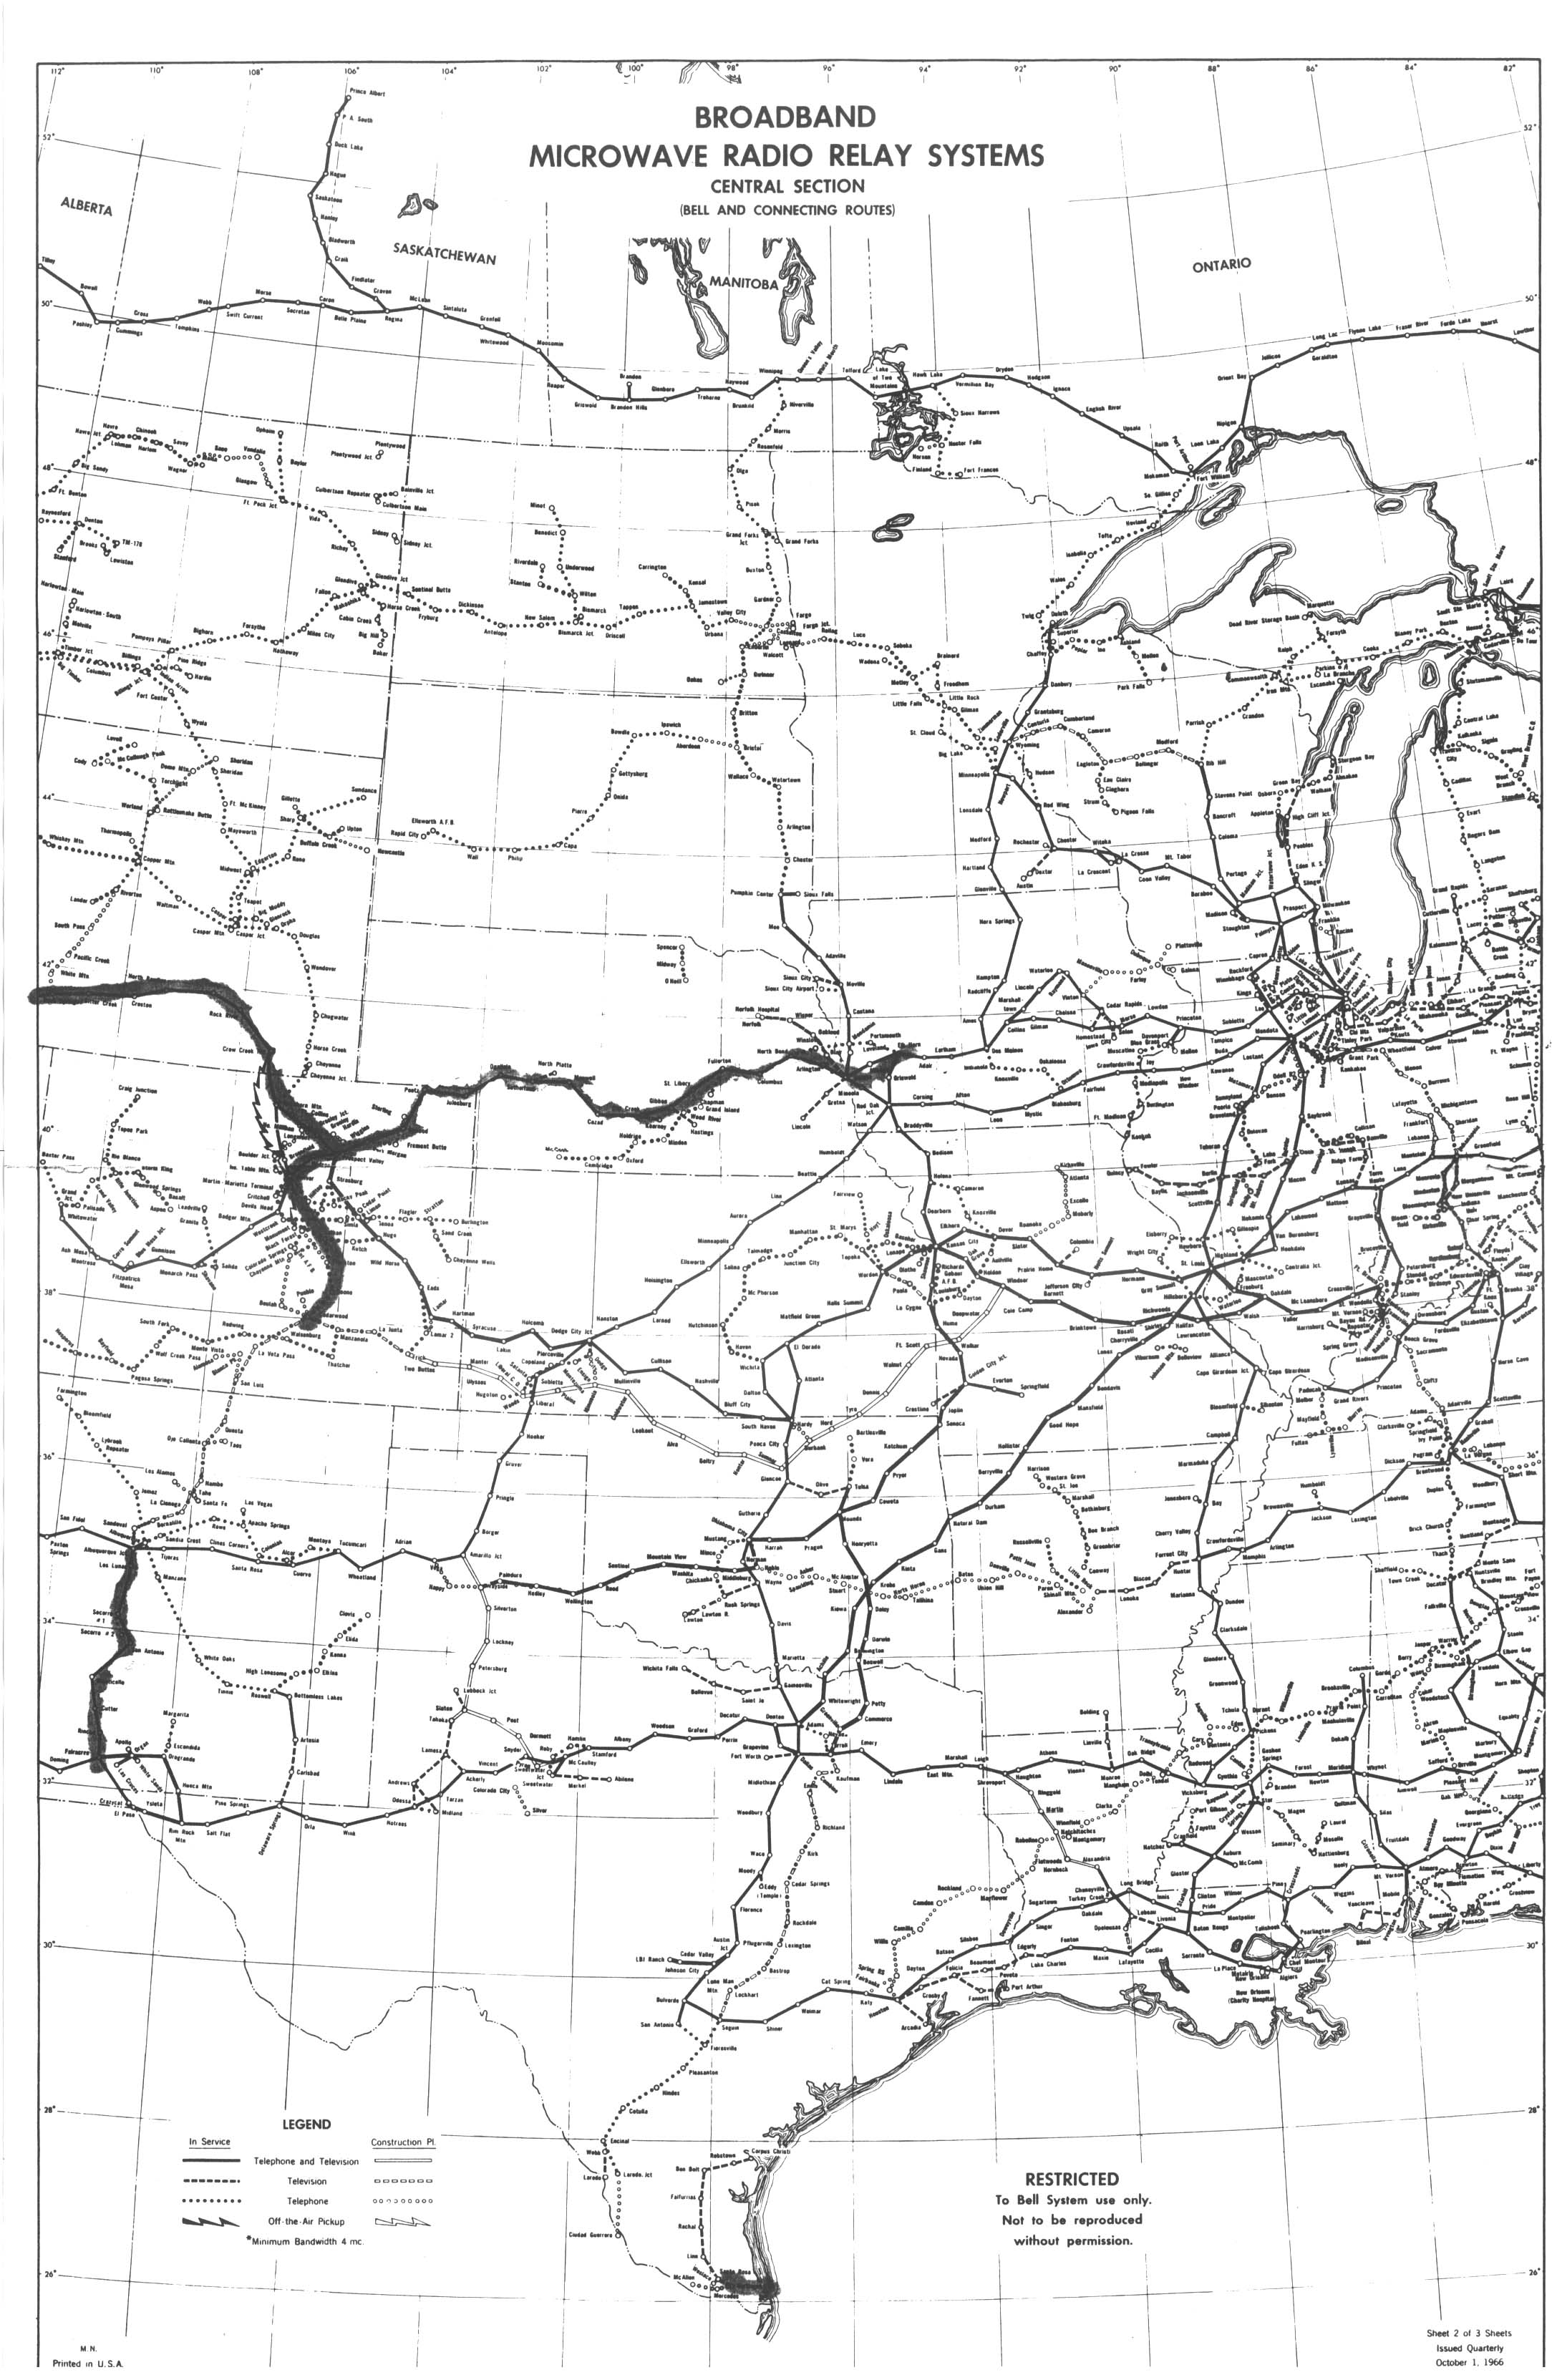 ATT Long Lines Information Sources Route Maps - Us map with connecting lines